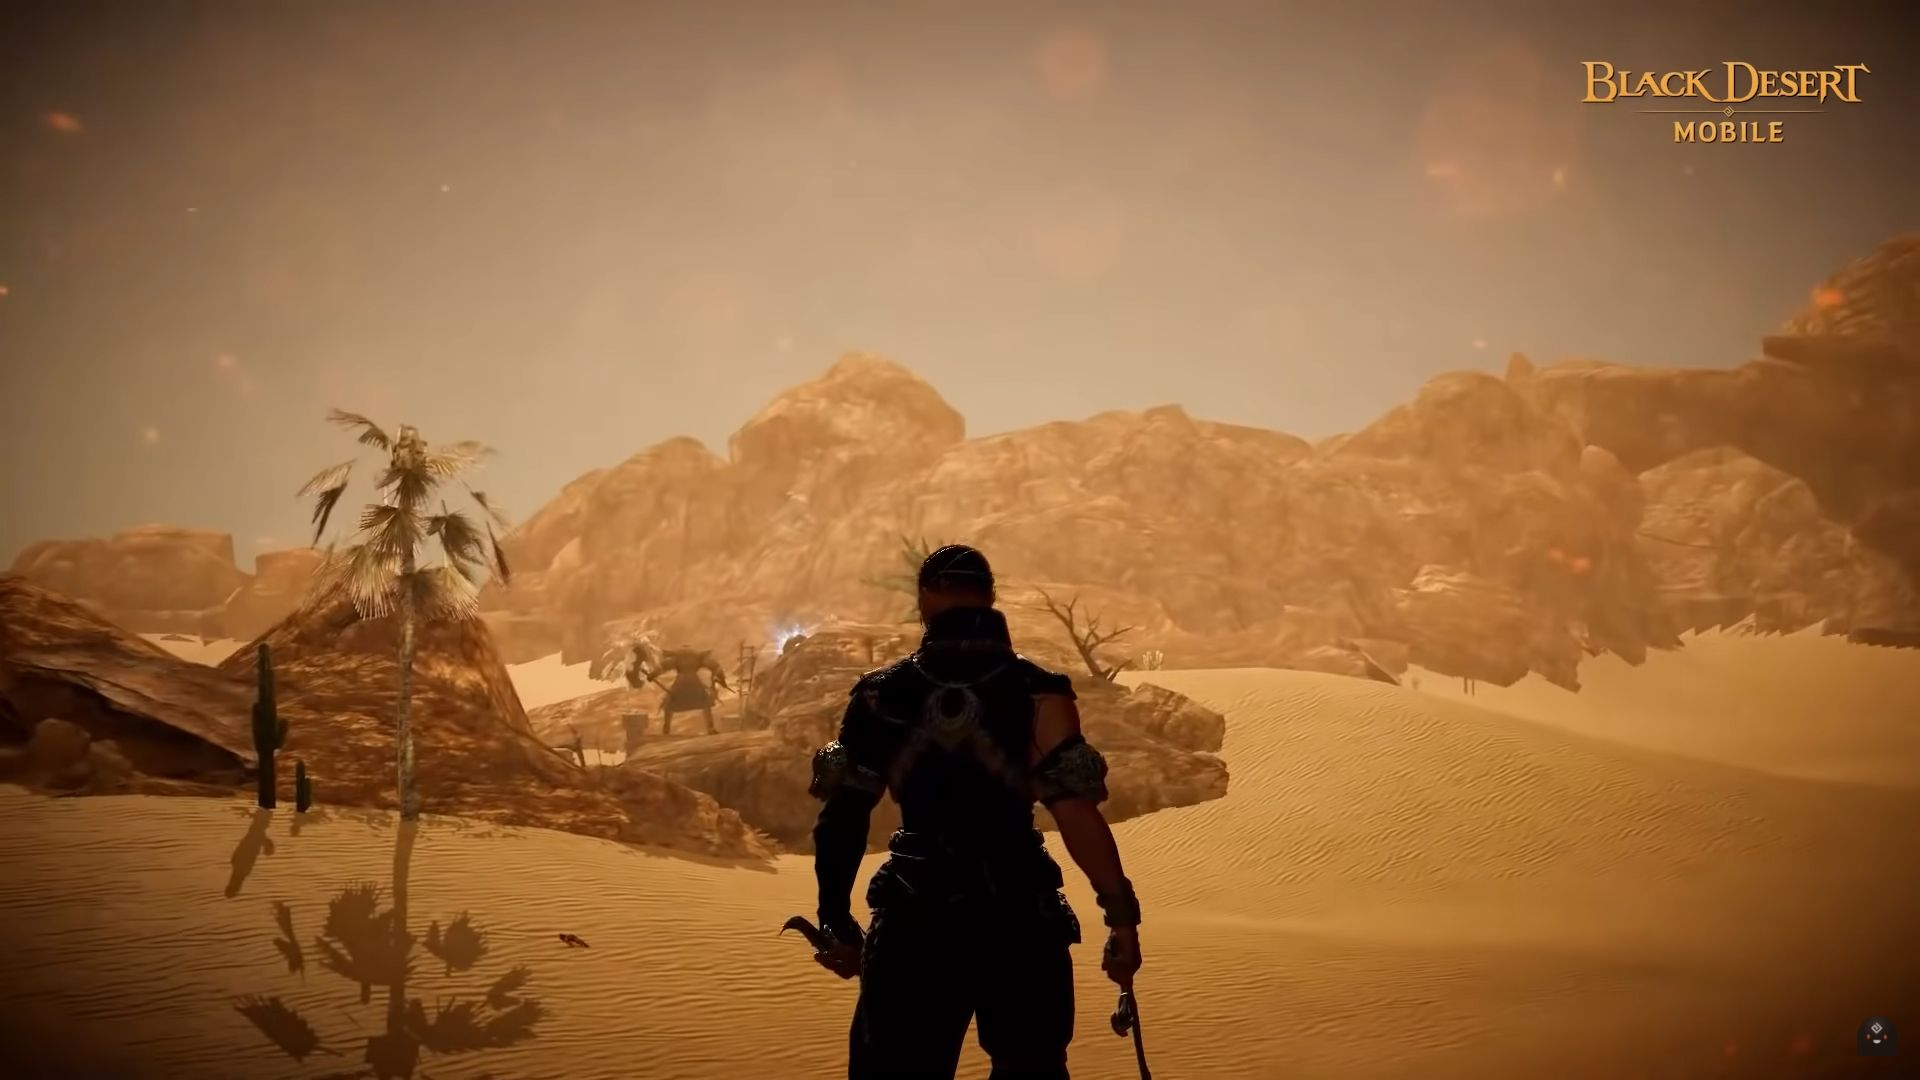 Black Desert Mobile Great Desert Update Allows Players to Explore a Huge New Area